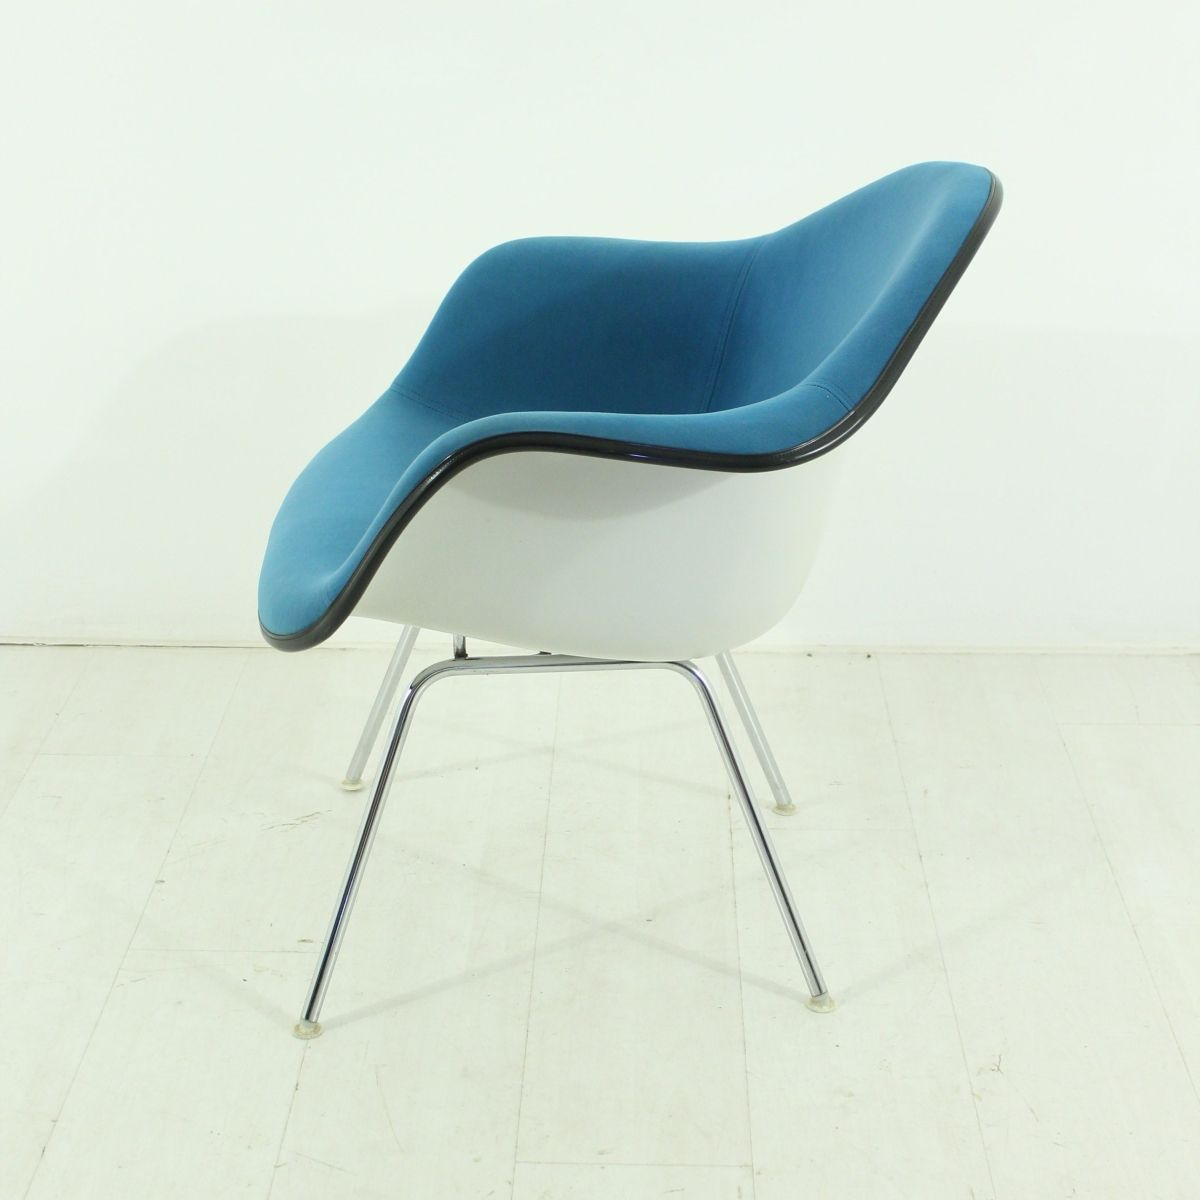 Chaise vintage bleue par charles ray eames pour vitra en for Chaise eames vitra soldes